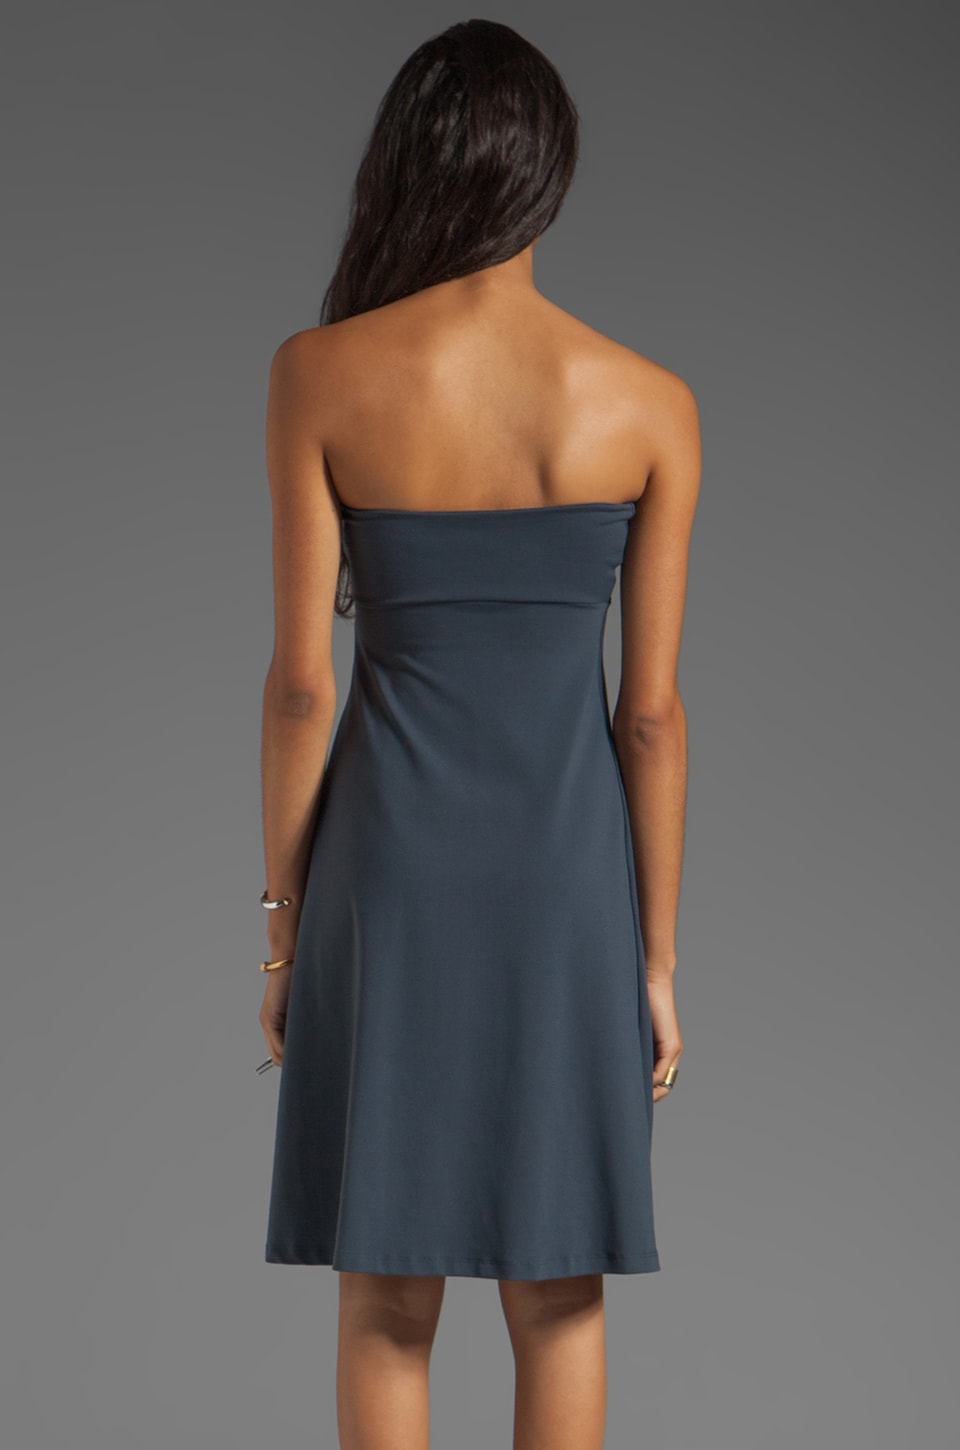 "Susana Monaco Tube 22"" Dress in Charcoal"